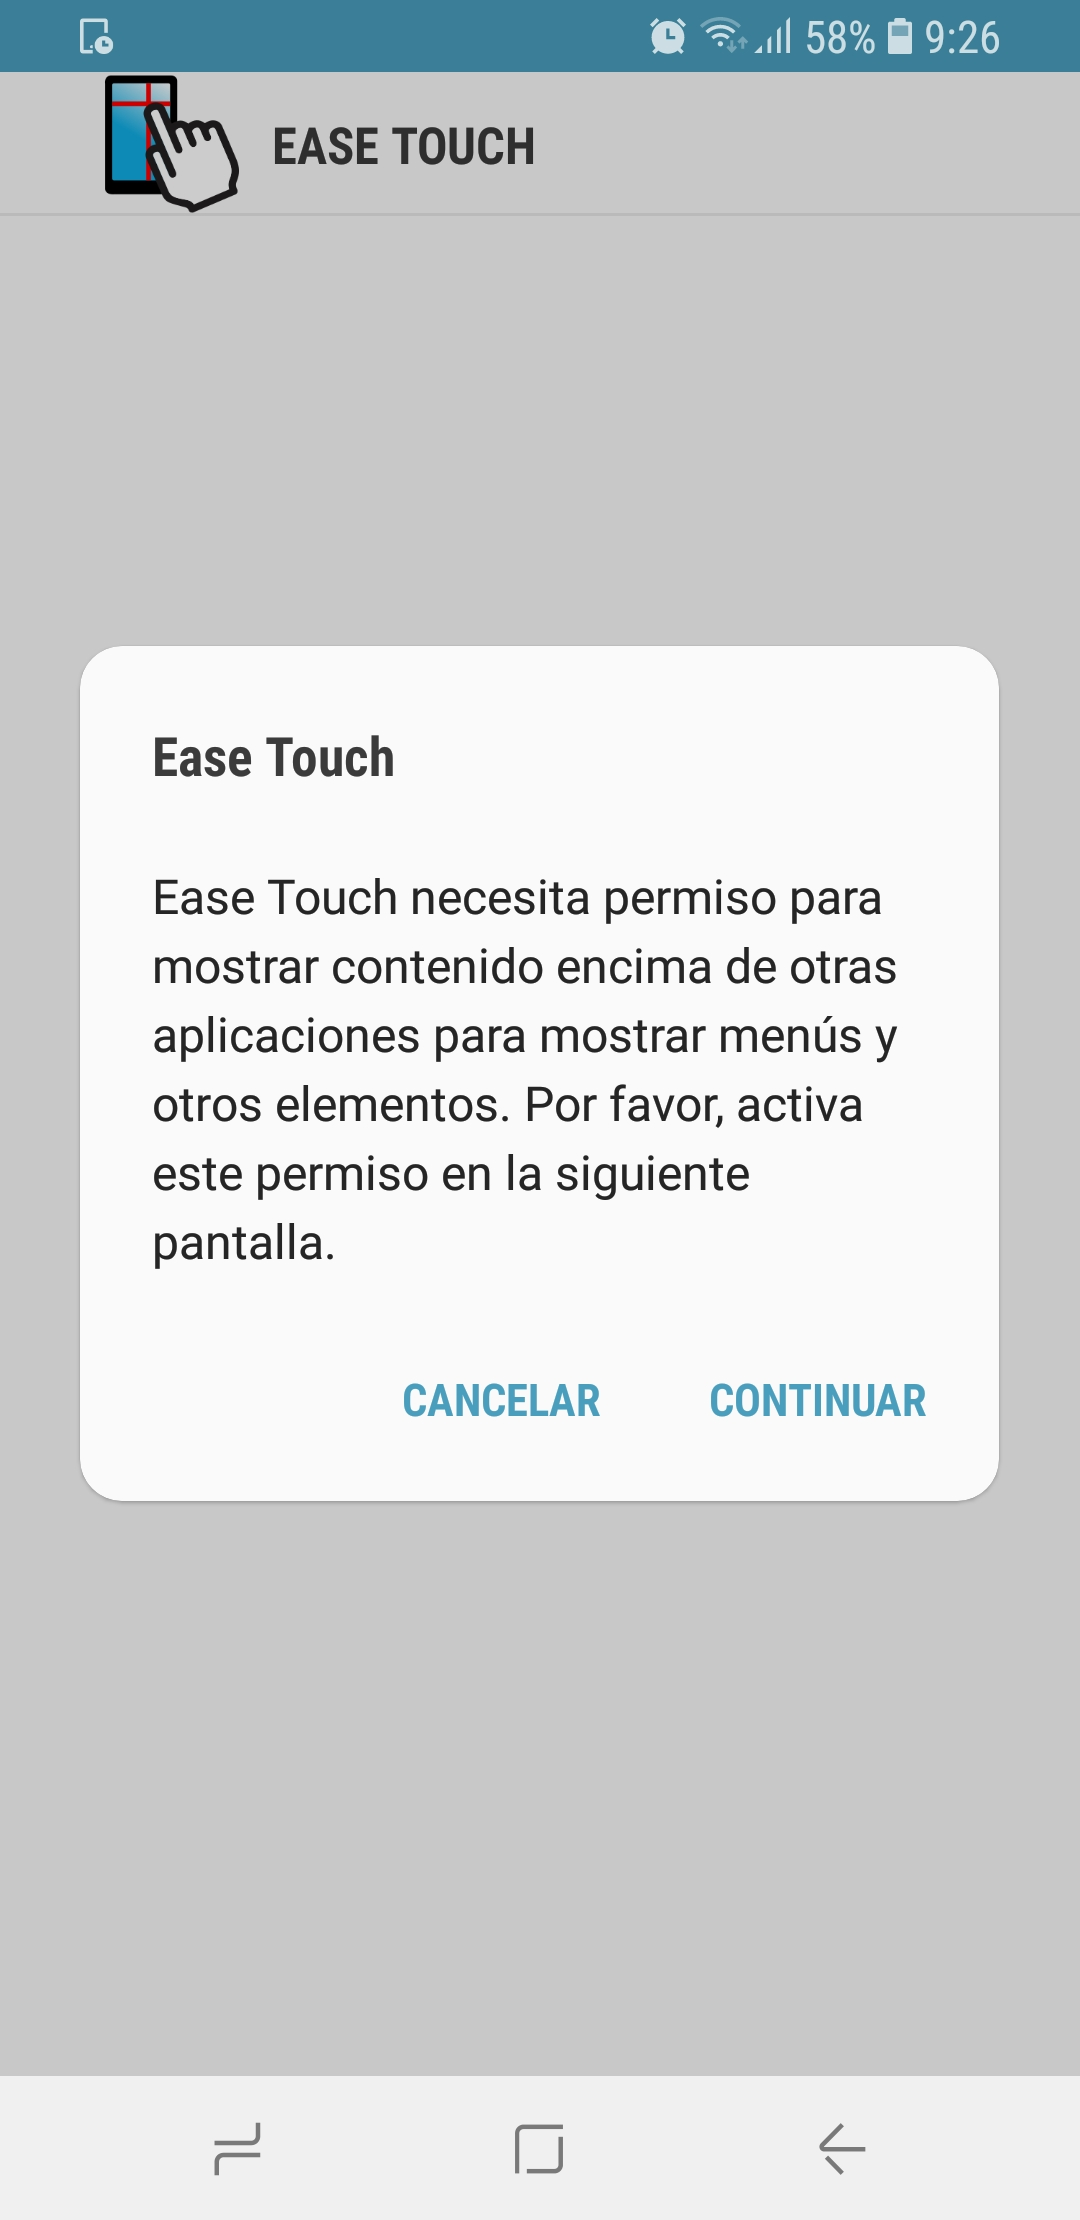 Ease touch permissions